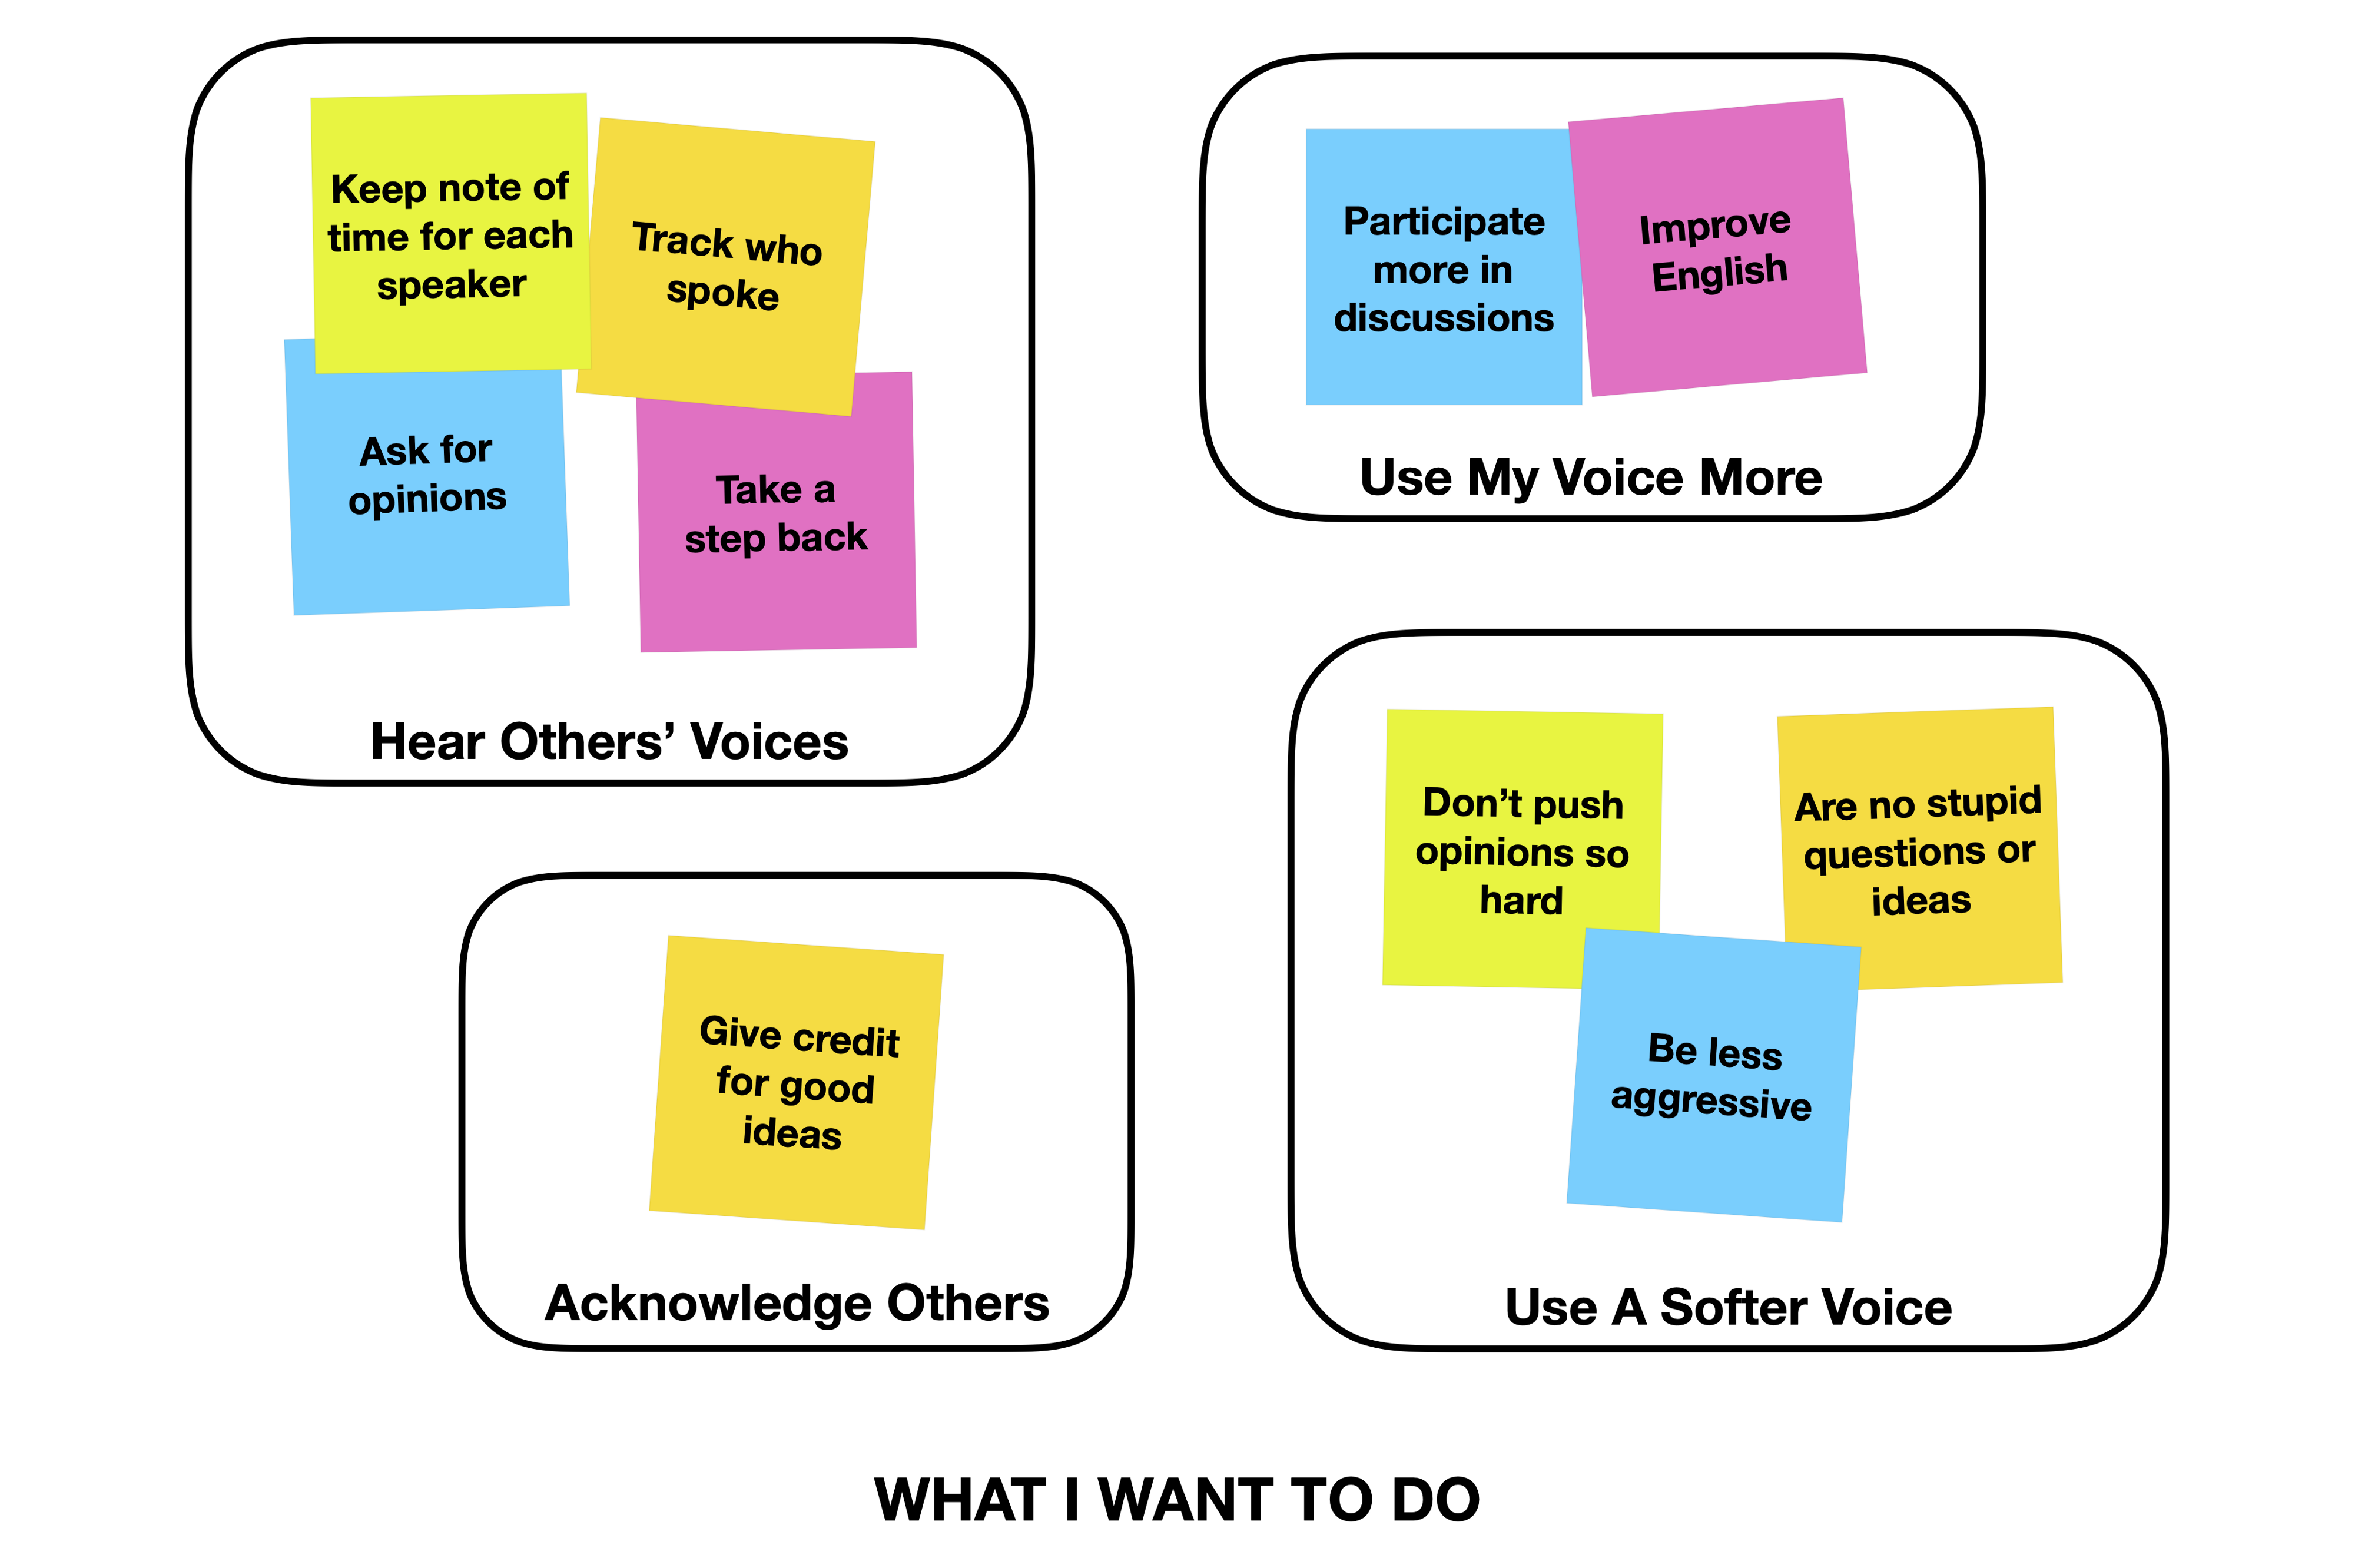 What I want to do— hear others' voices, use a softer voice, acknowledge others, use my voice more